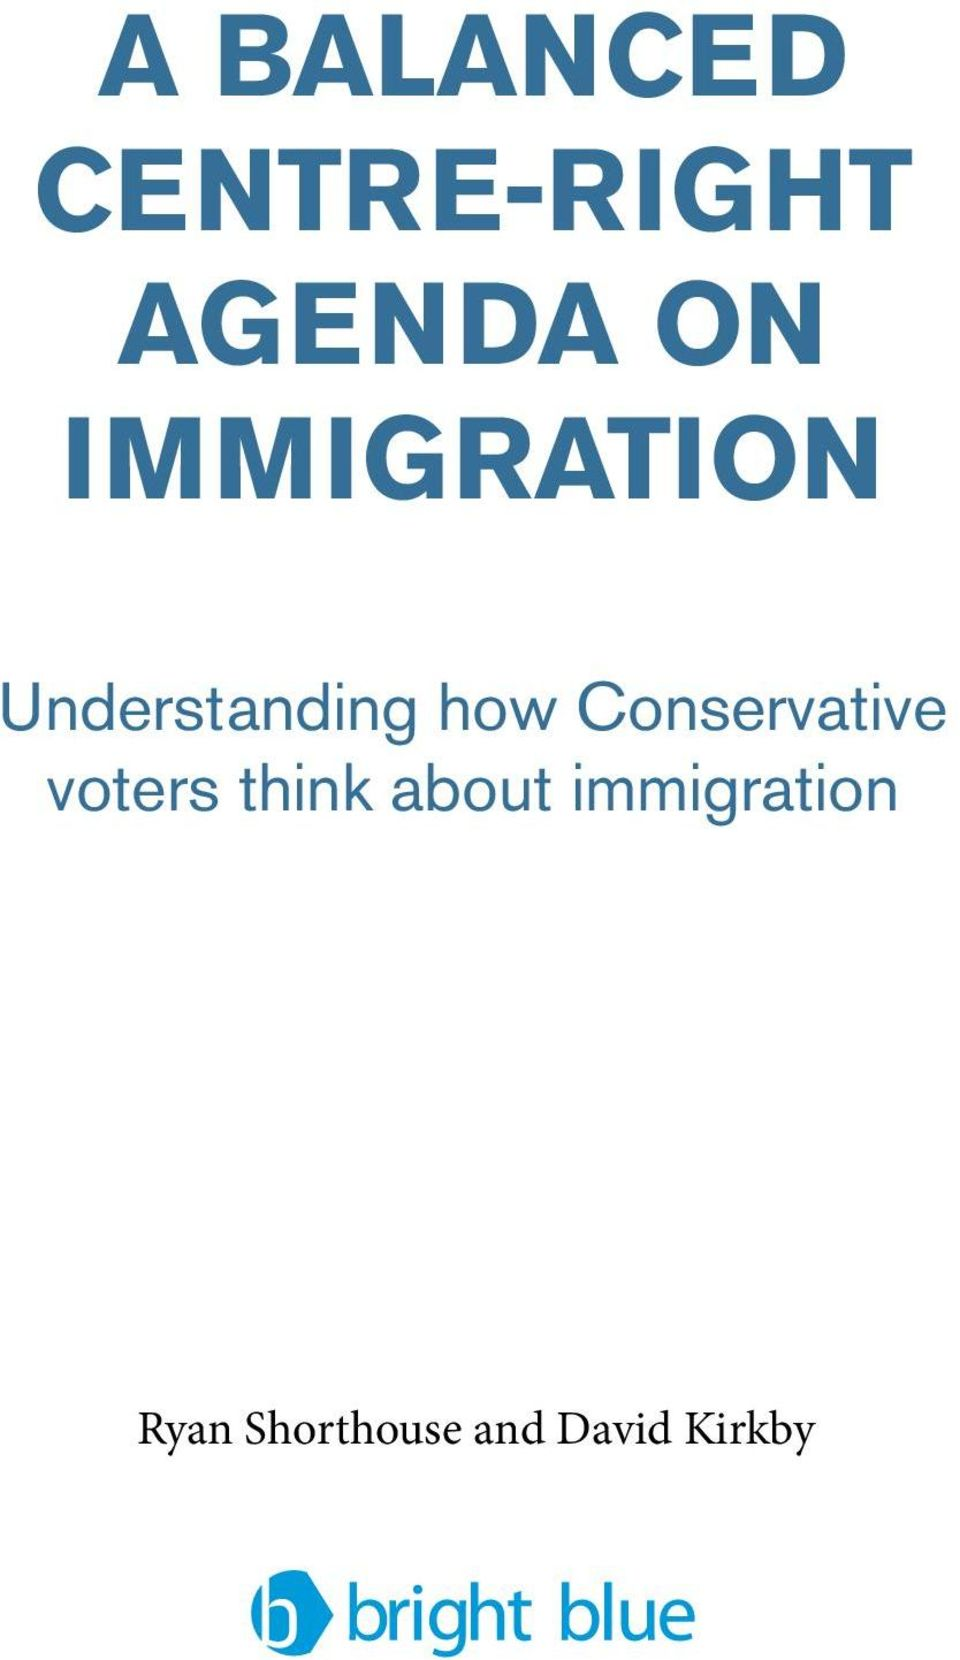 Conservative voters think about